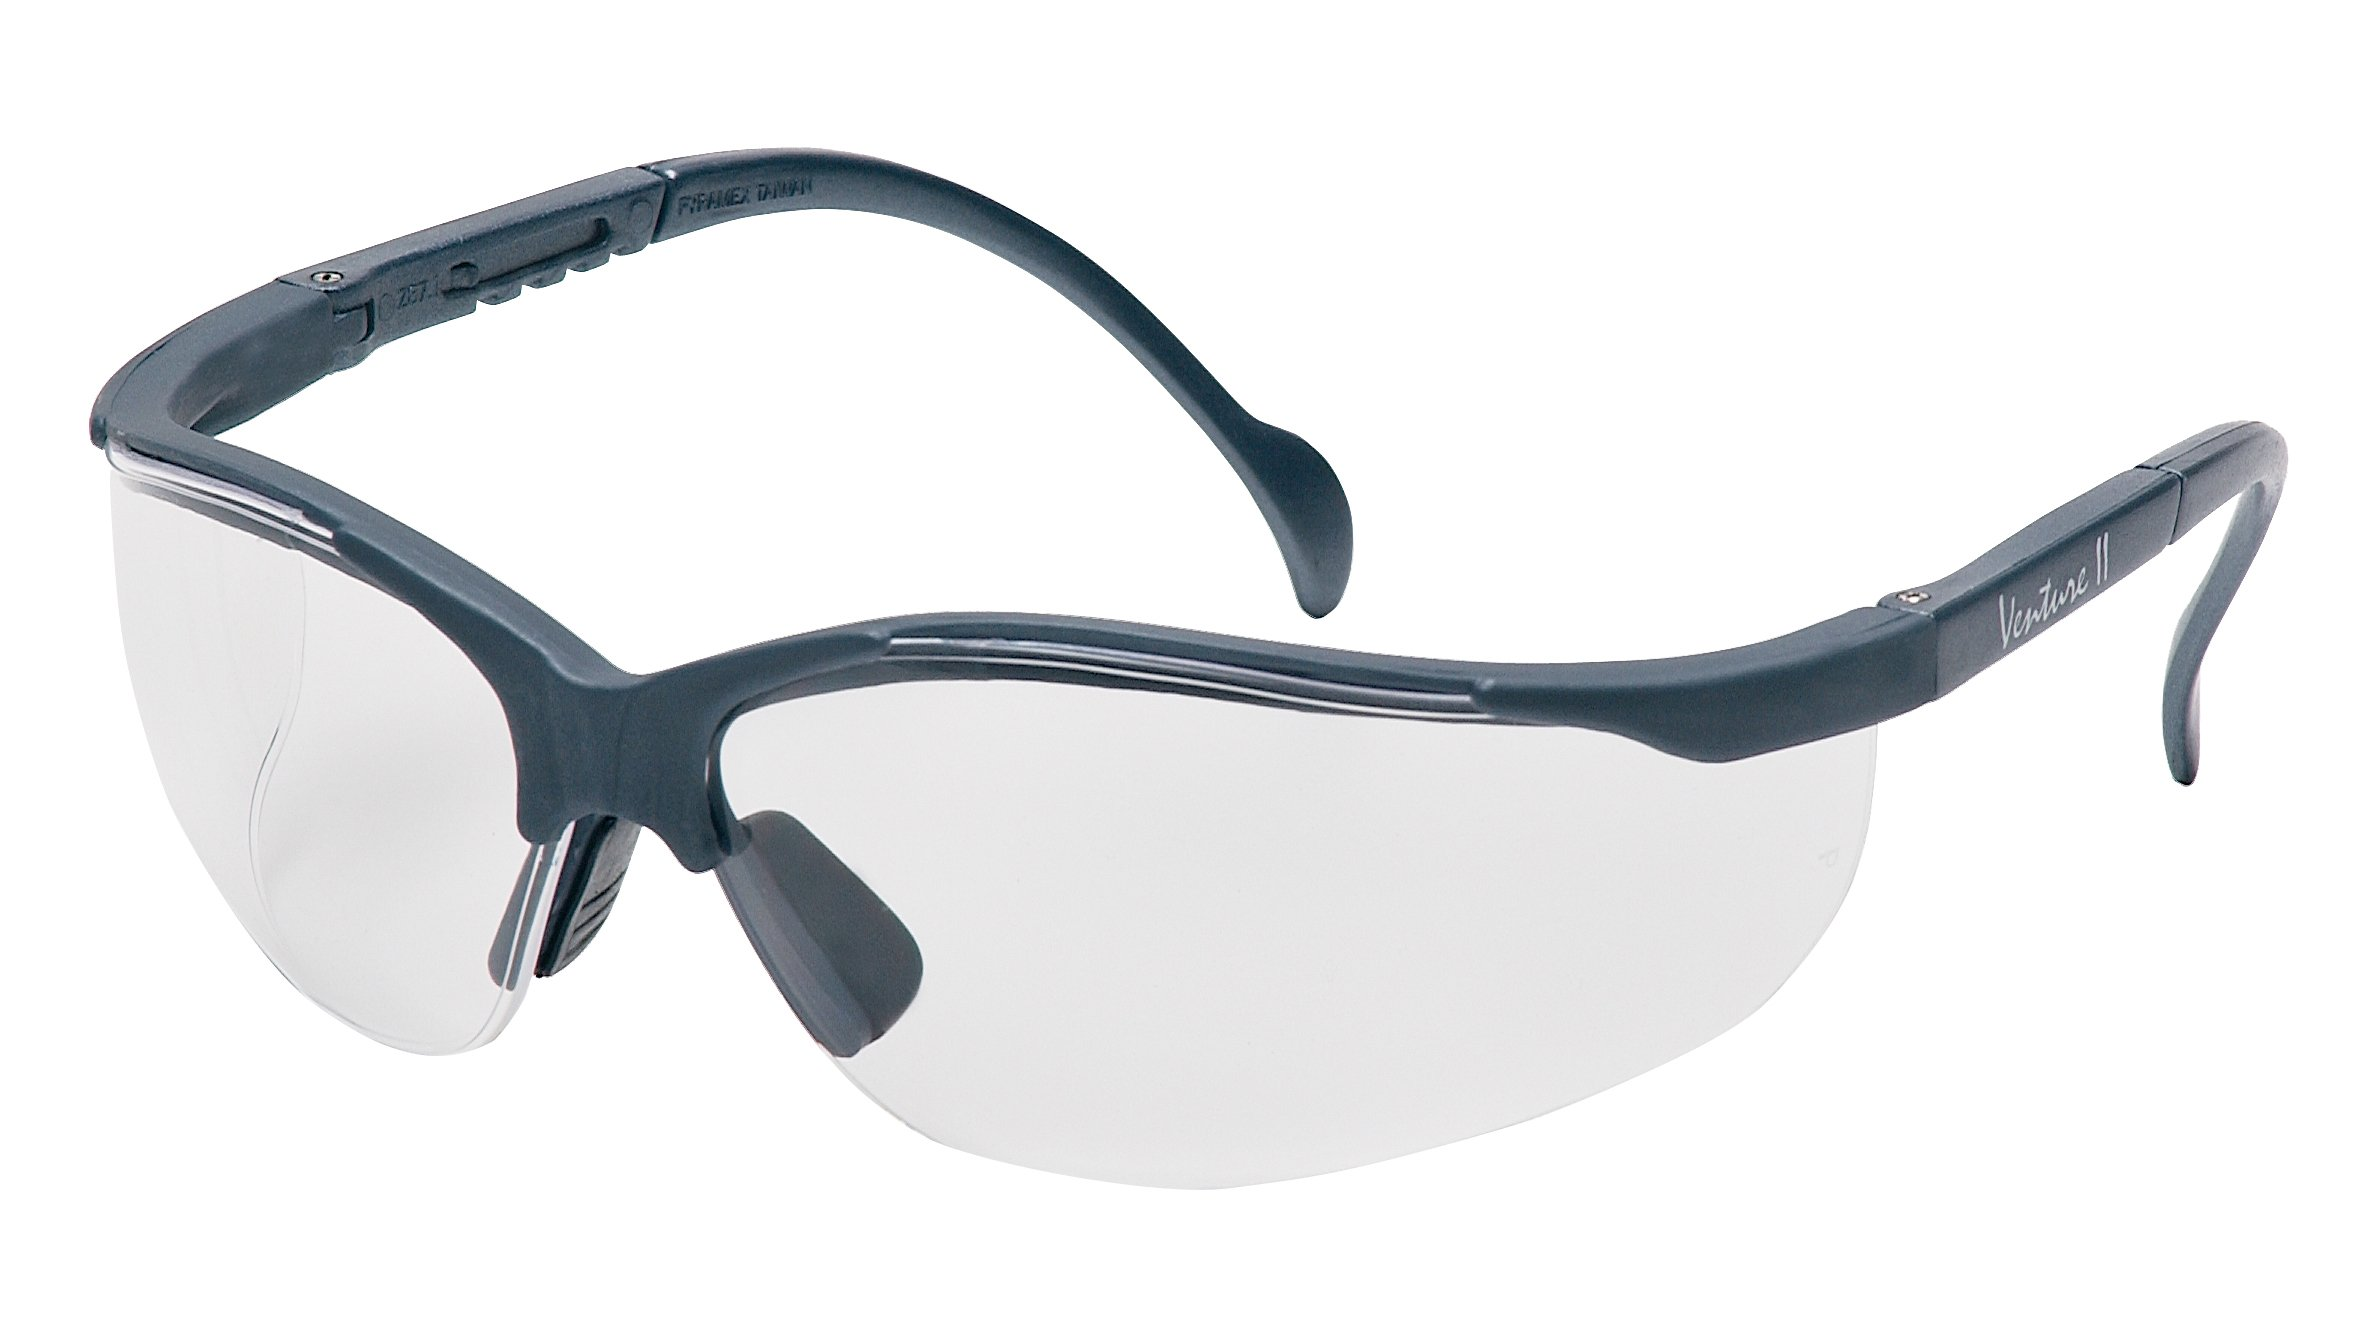 Pyramex Venture Ii Safety Eyewear, Indoor/Outdoor Mirror Lens With Slate Gray Frame by Pyramex Safety